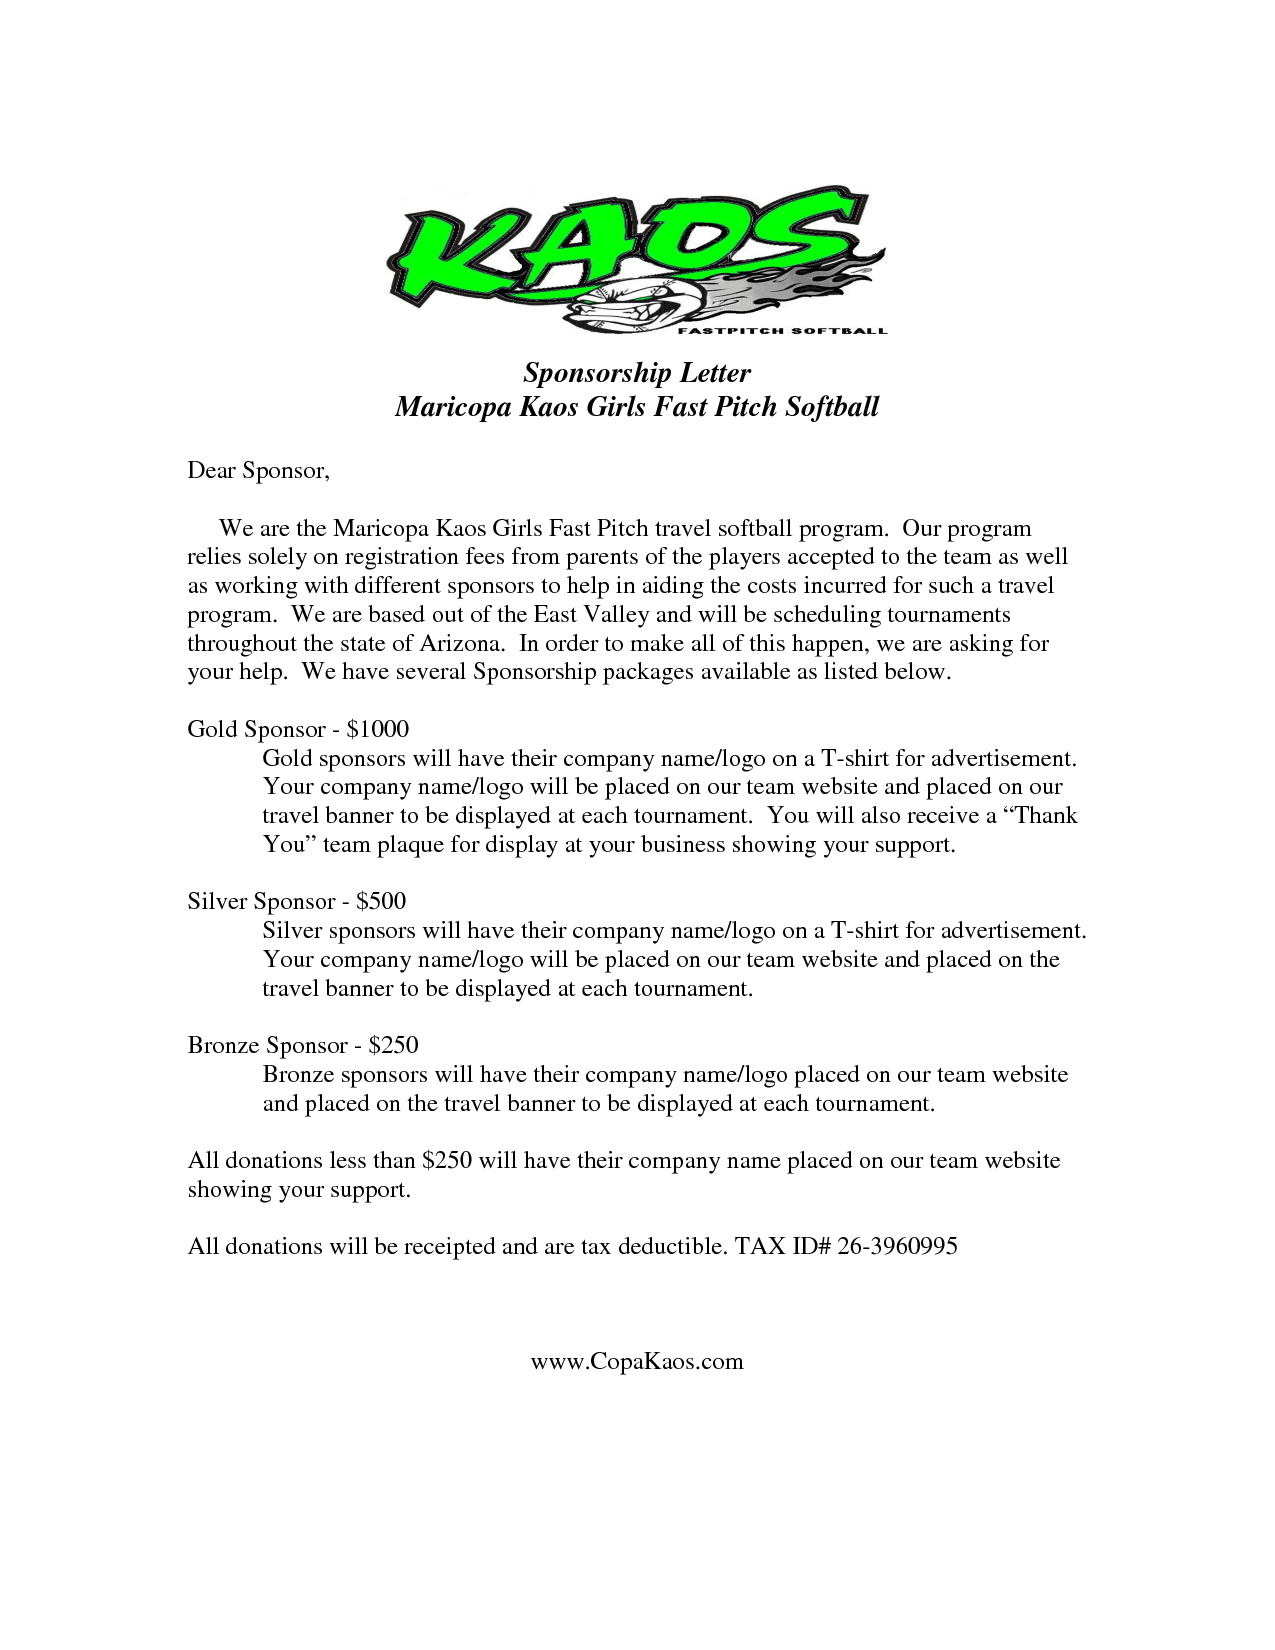 cheerleading donation letter template example-Image result for sample sponsor request letter donation 1-a